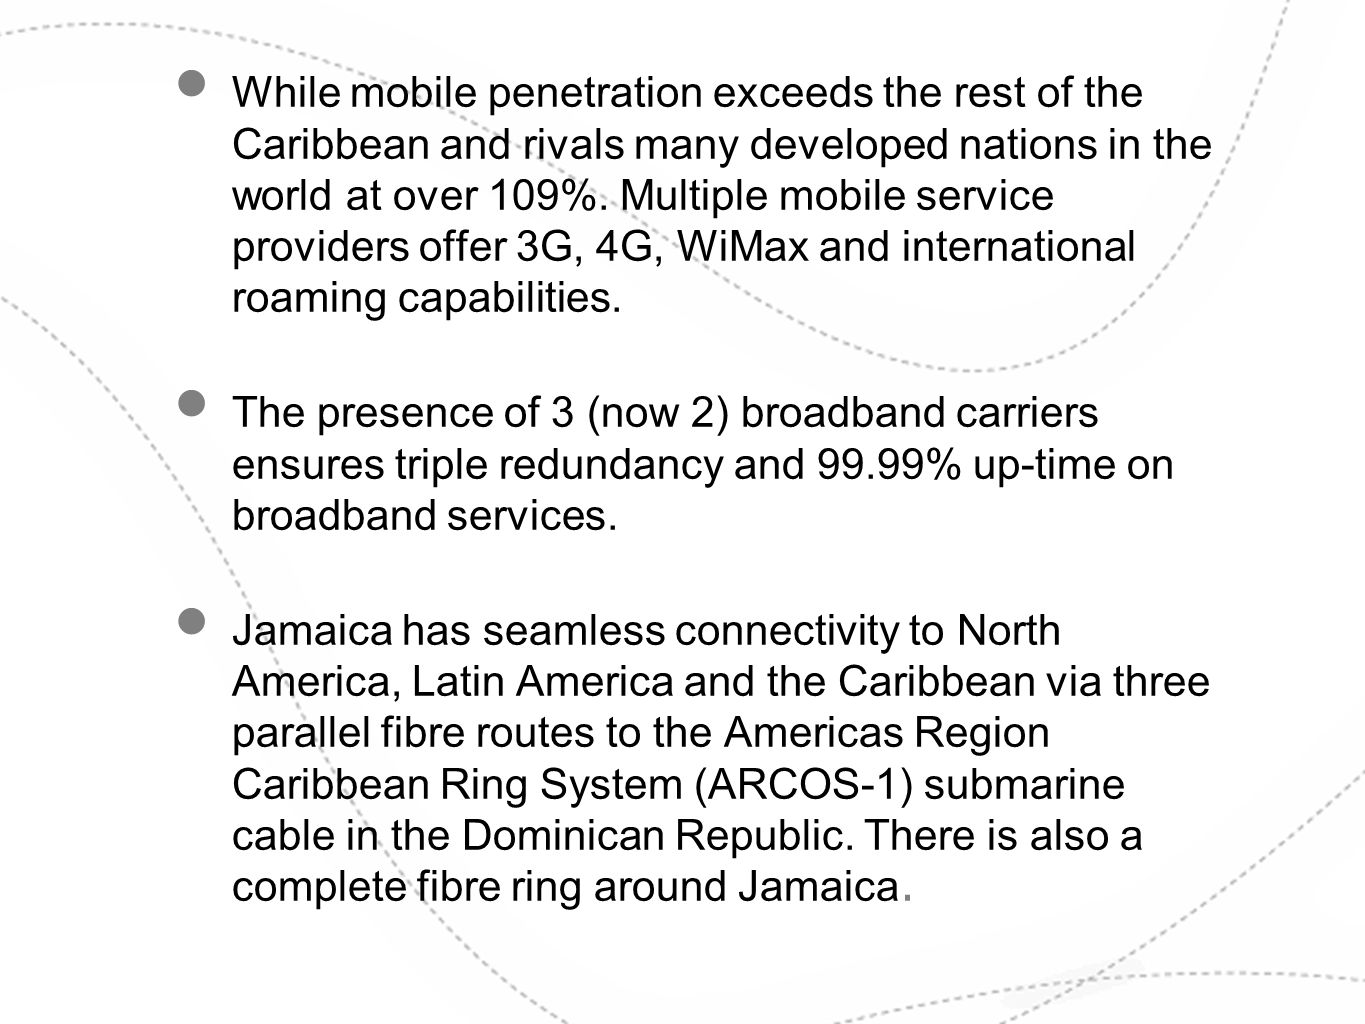 While mobile penetration exceeds the rest of the Caribbean and rivals many developed nations in the world at over 109%. Multiple mobile service provid